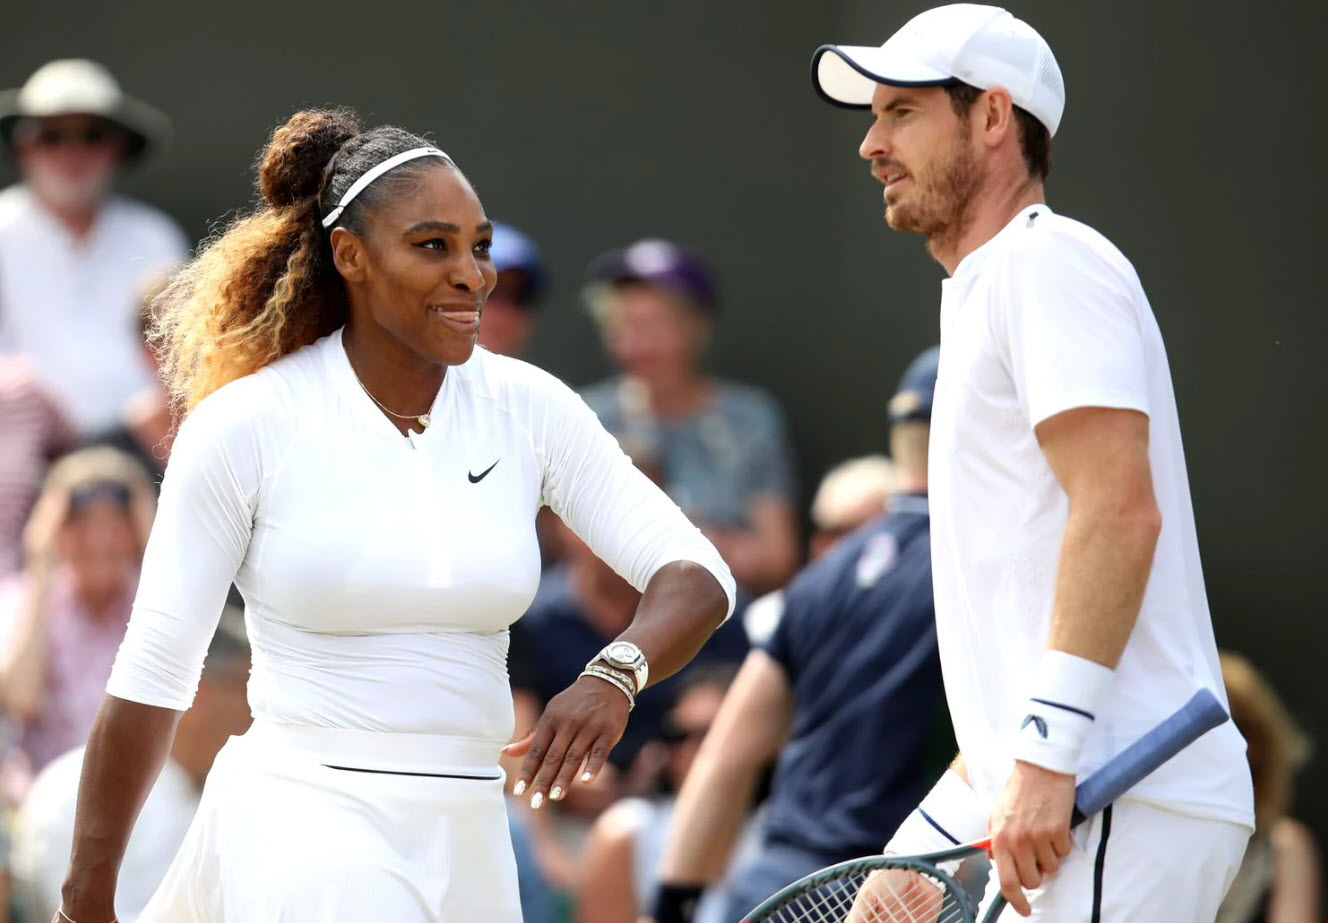 serena williams winning with andy murray at wimbledon 2019